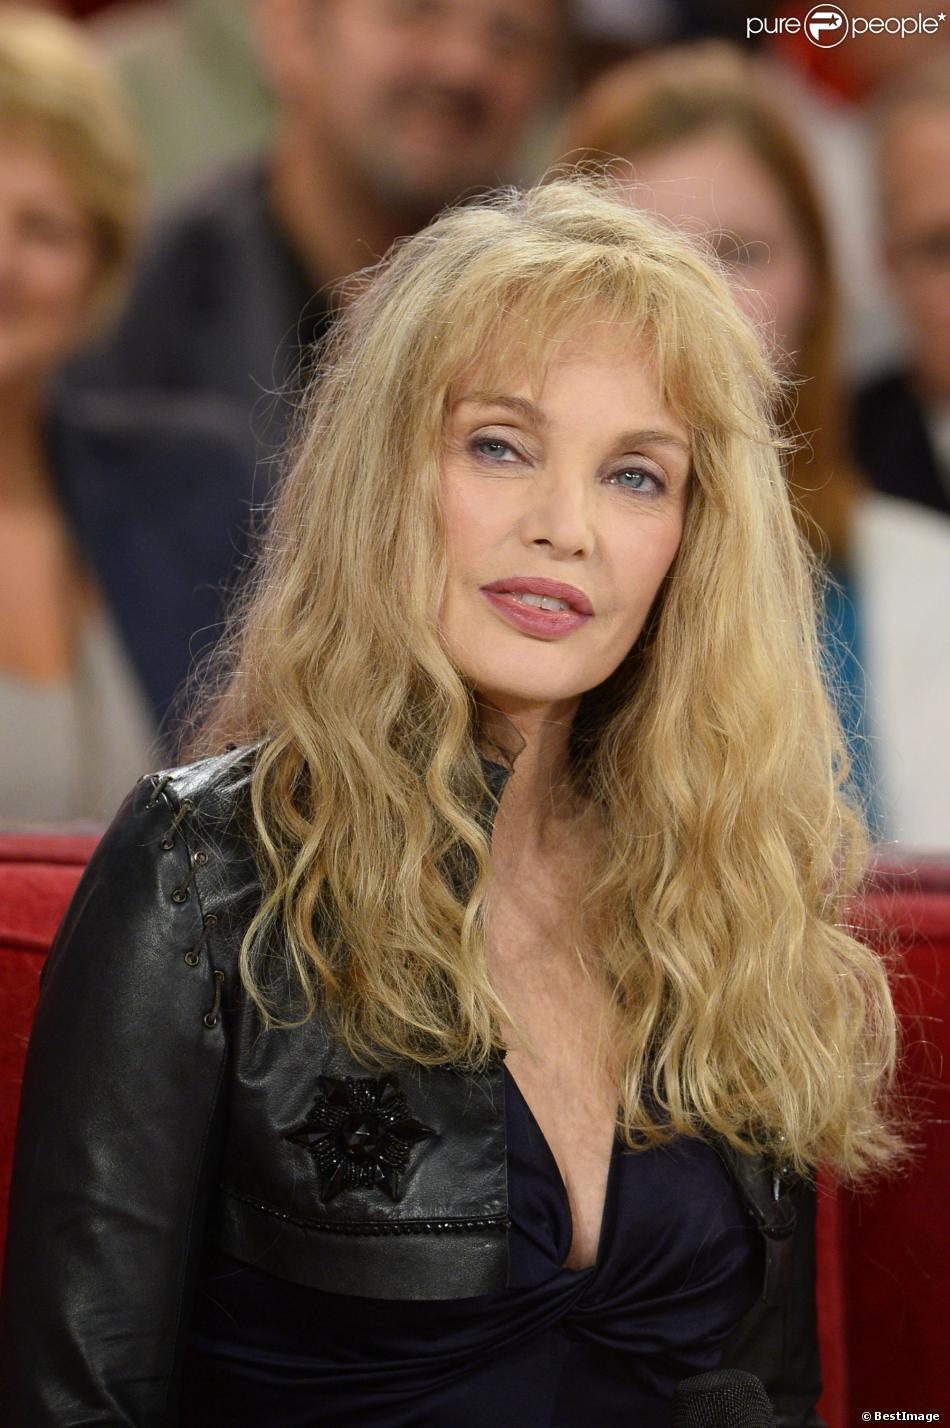 Arielle Dombasle earned a  million dollar salary, leaving the net worth at 1 million in 2017